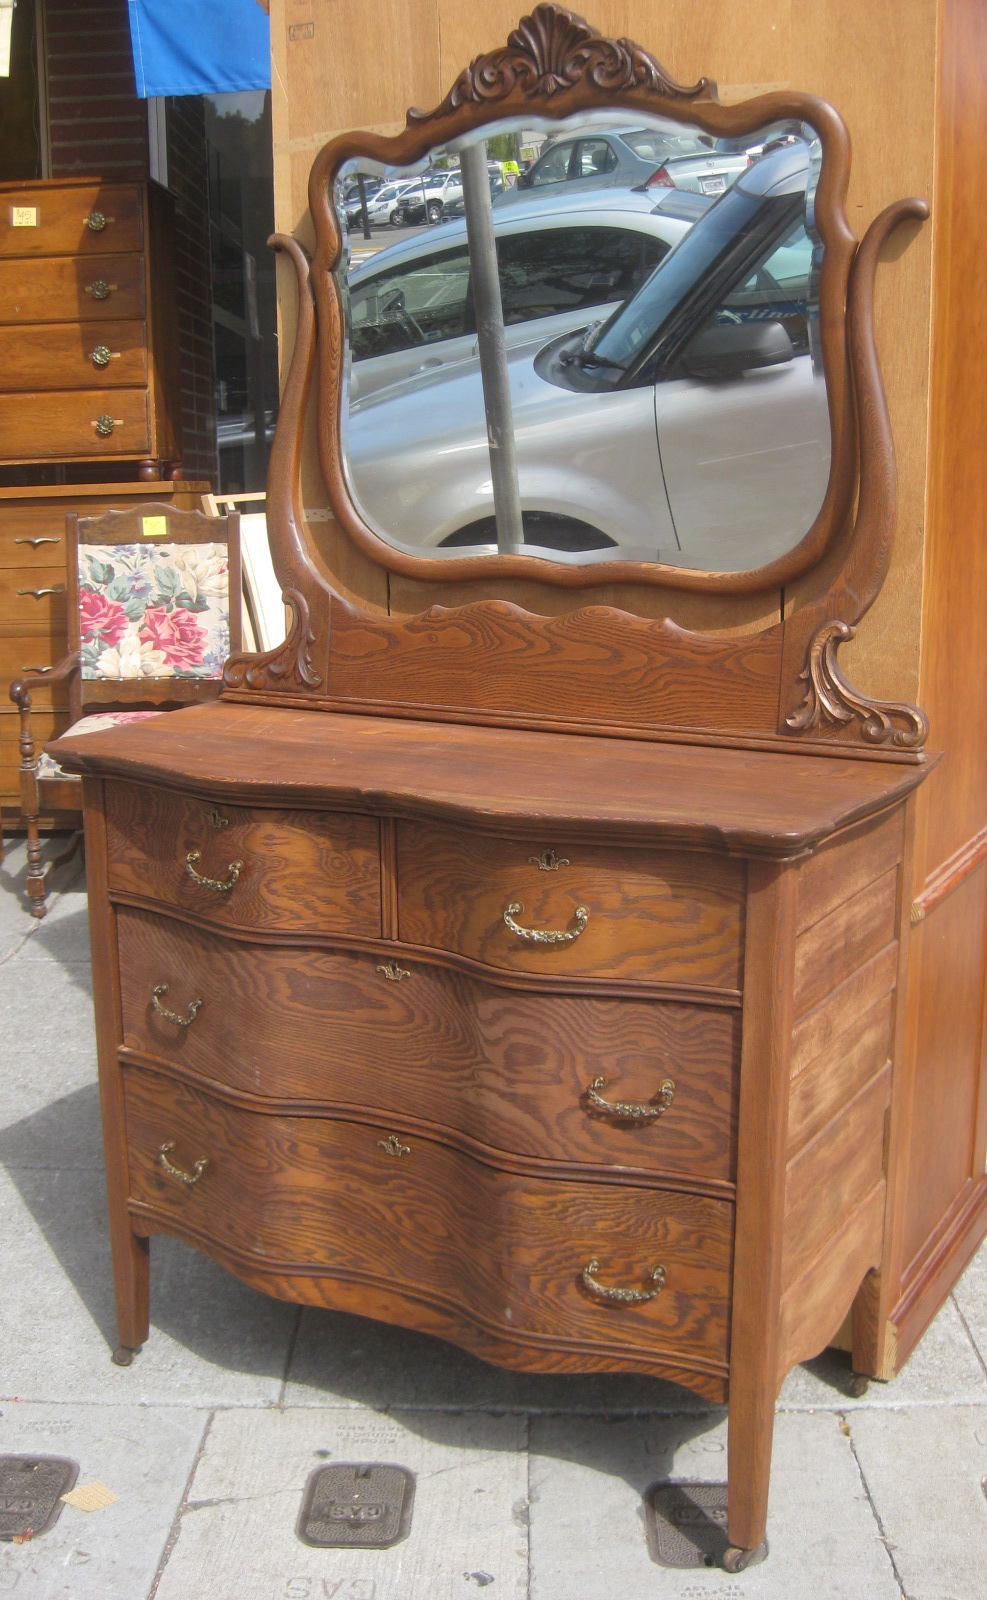 Uhuru Furniture Amp Collectibles Sold Antique Dresser